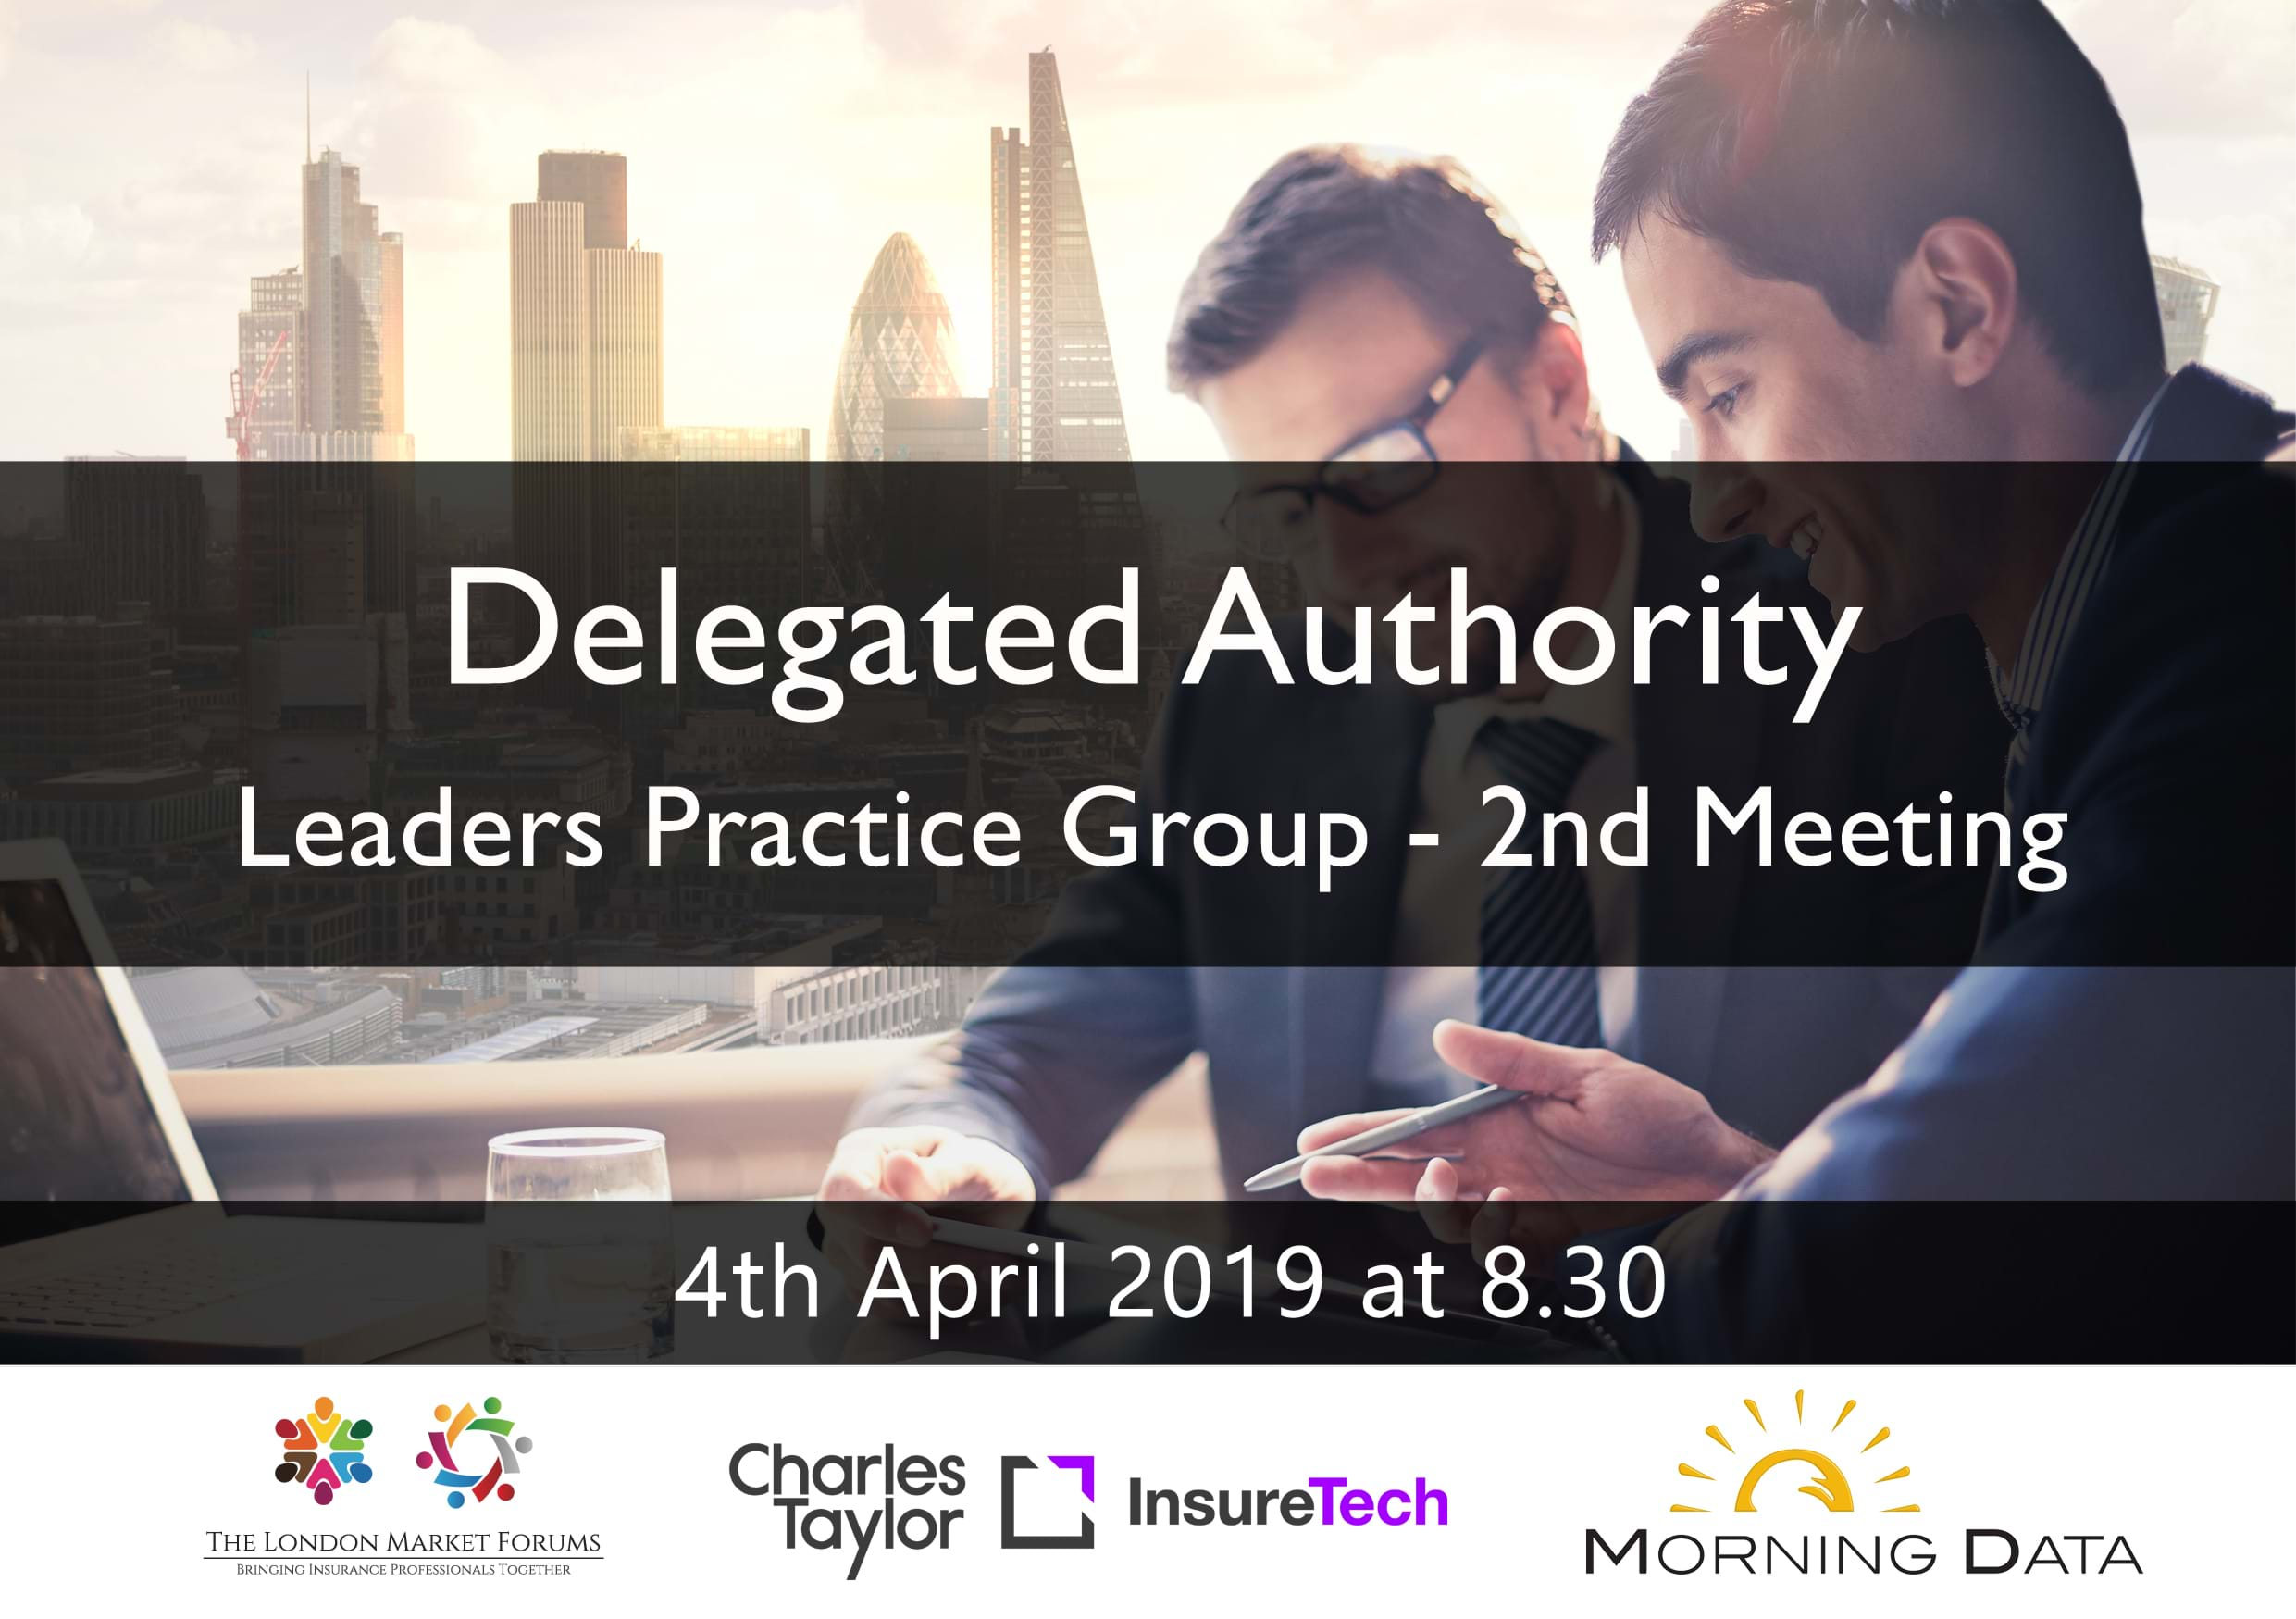 Delegated Authority Leaders Practice Group - 4th April 2019